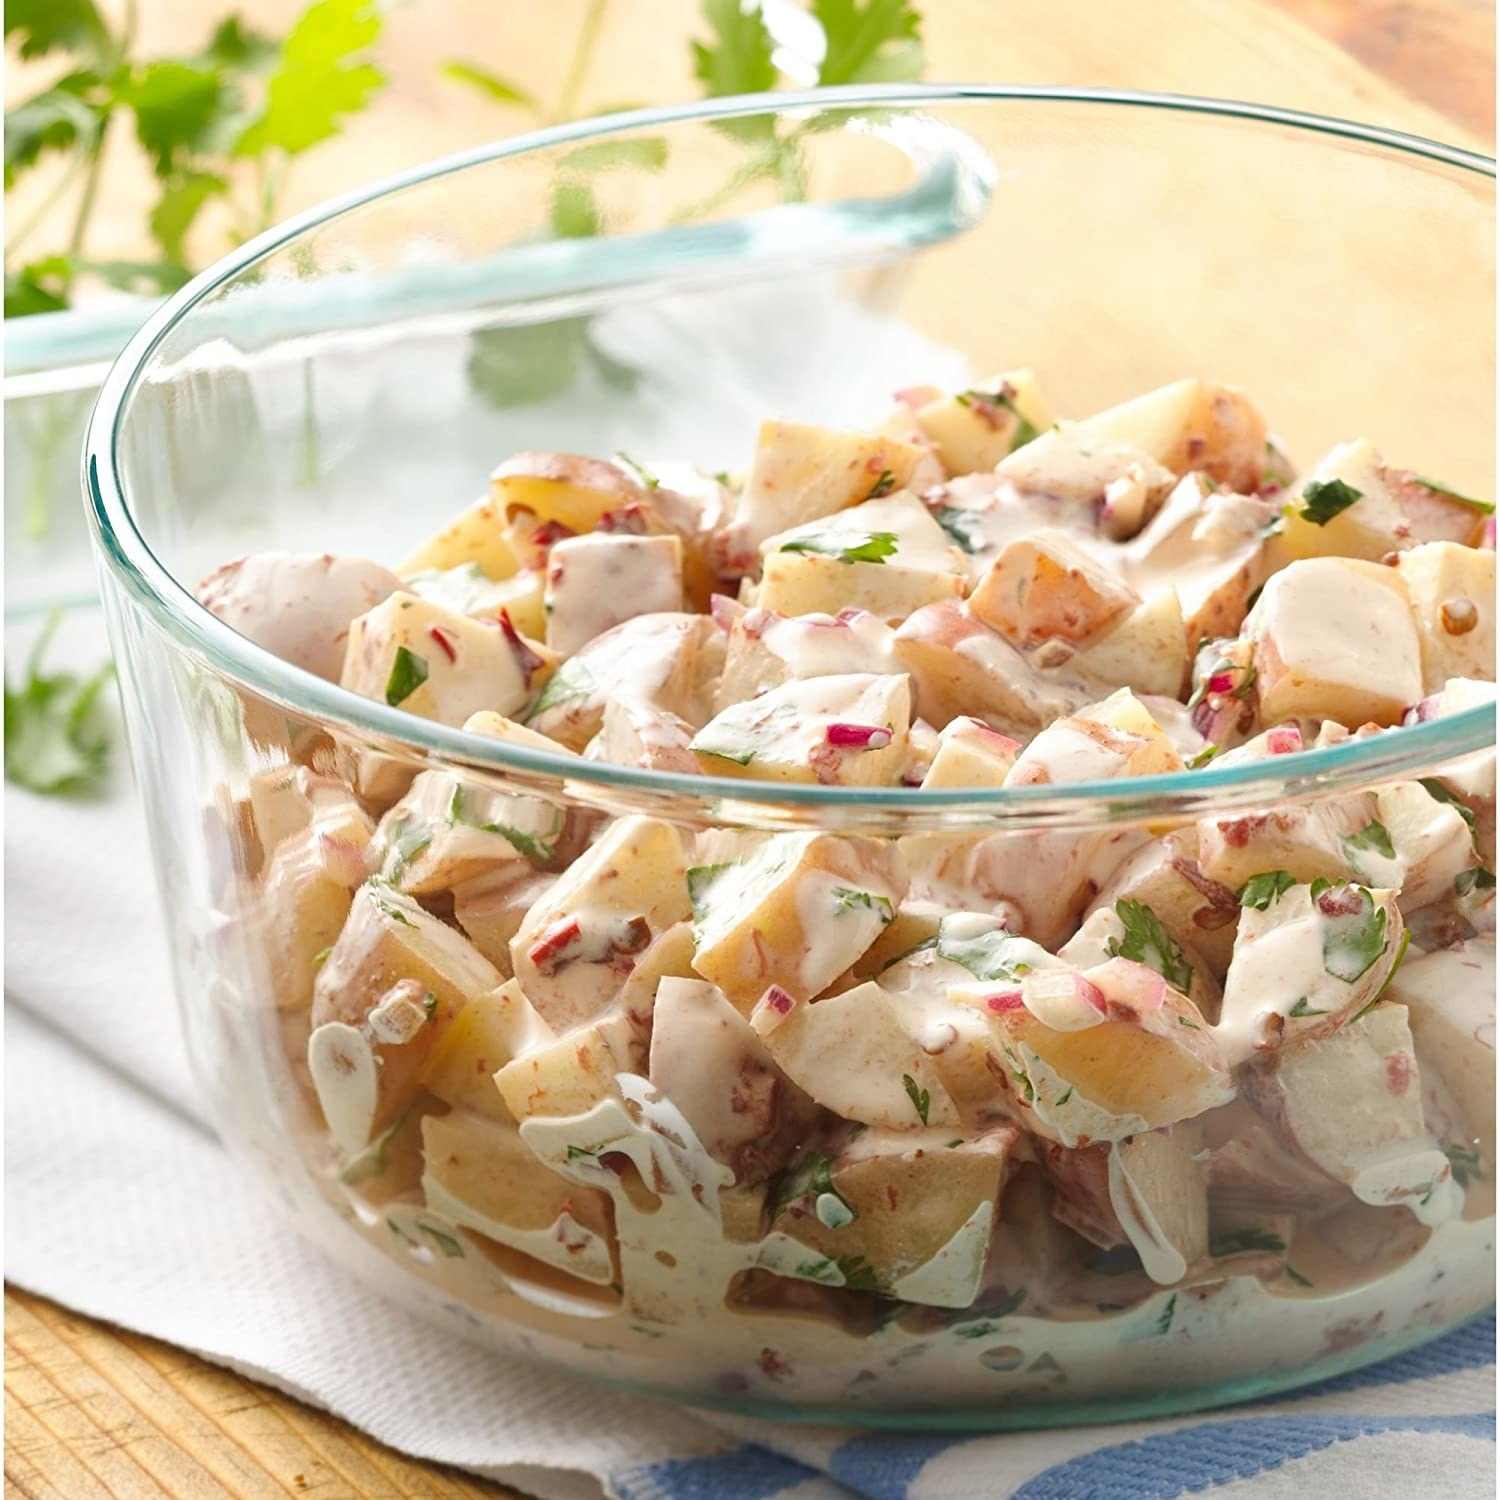 chicken salad in a glass bowl